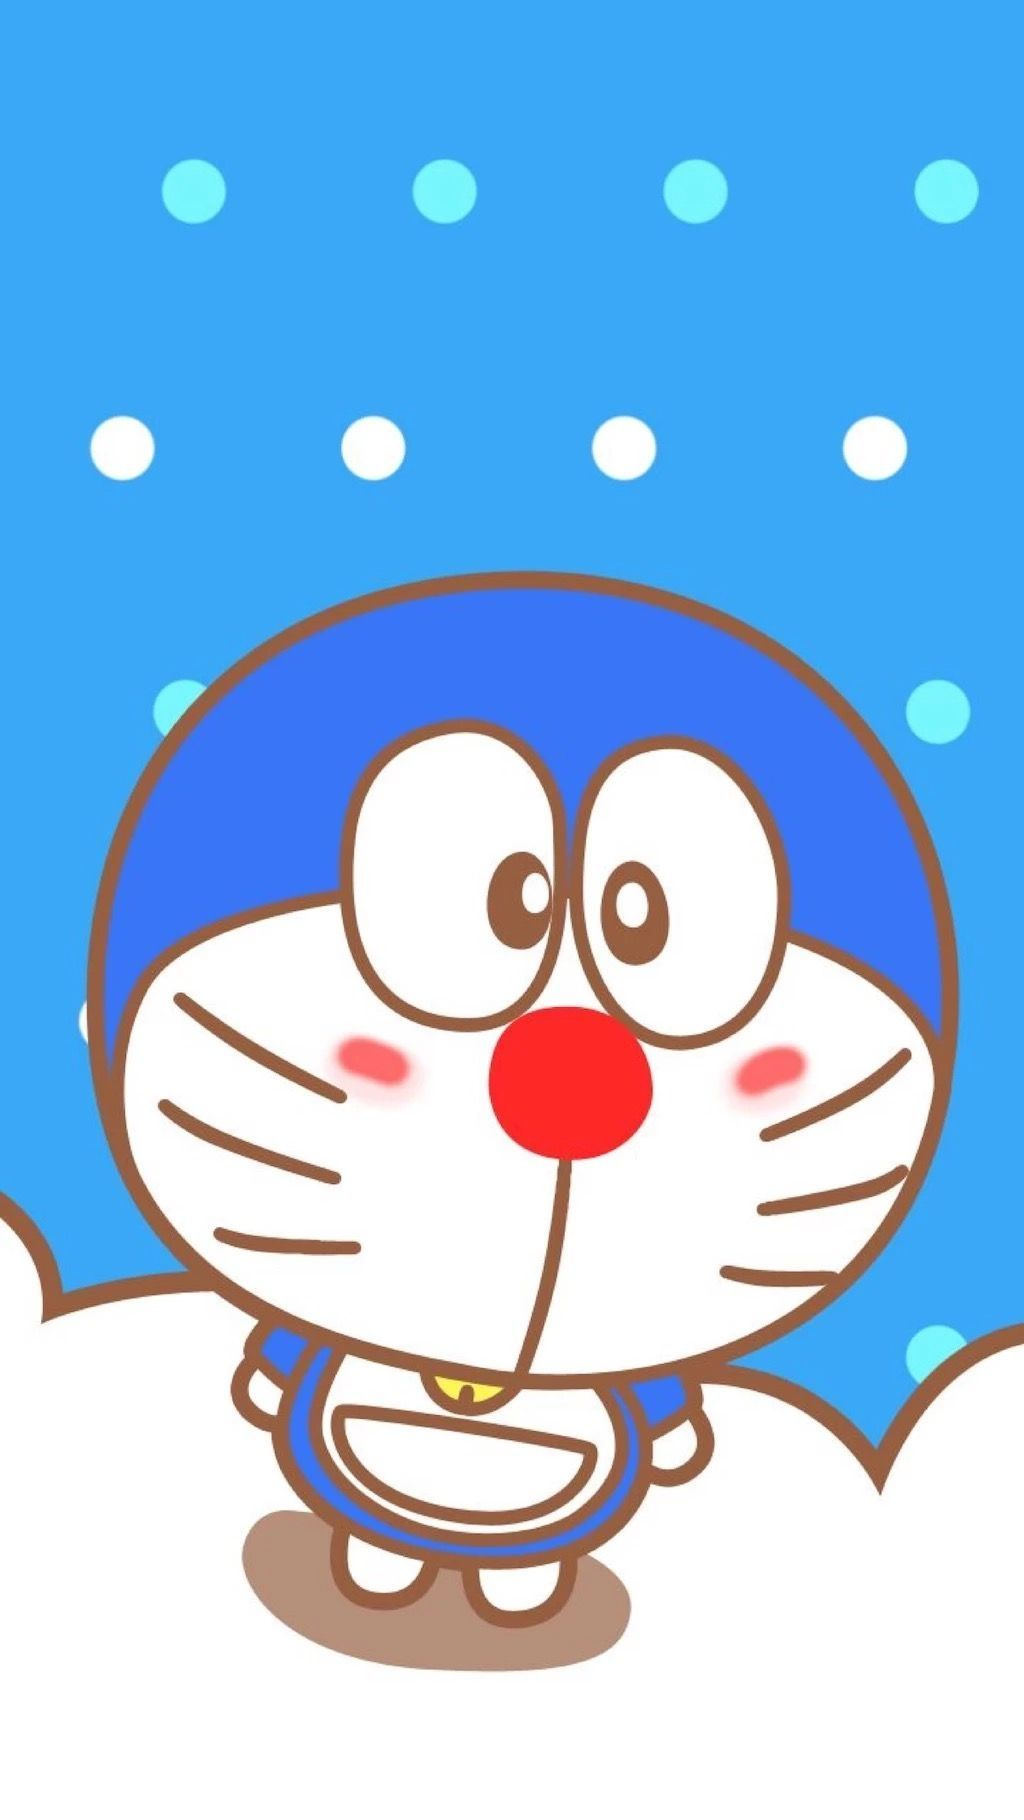 Best Doraemon Wallpaper Image Hd Picturez In 2019 Doraemon